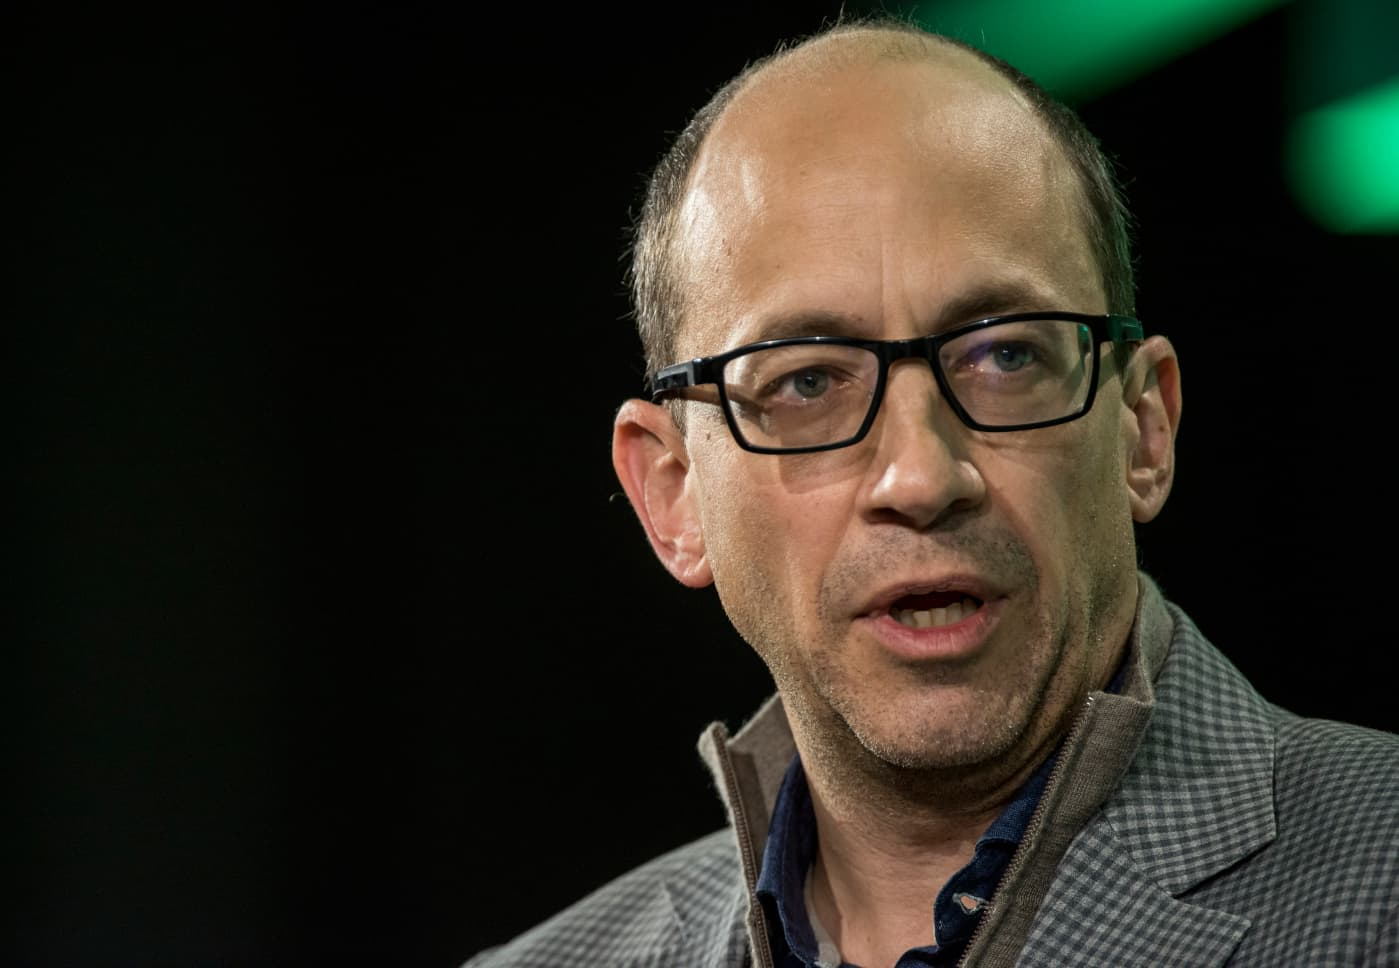 Ex-Twitter CEO says social media platforms shouldn't 'treat every account equally'